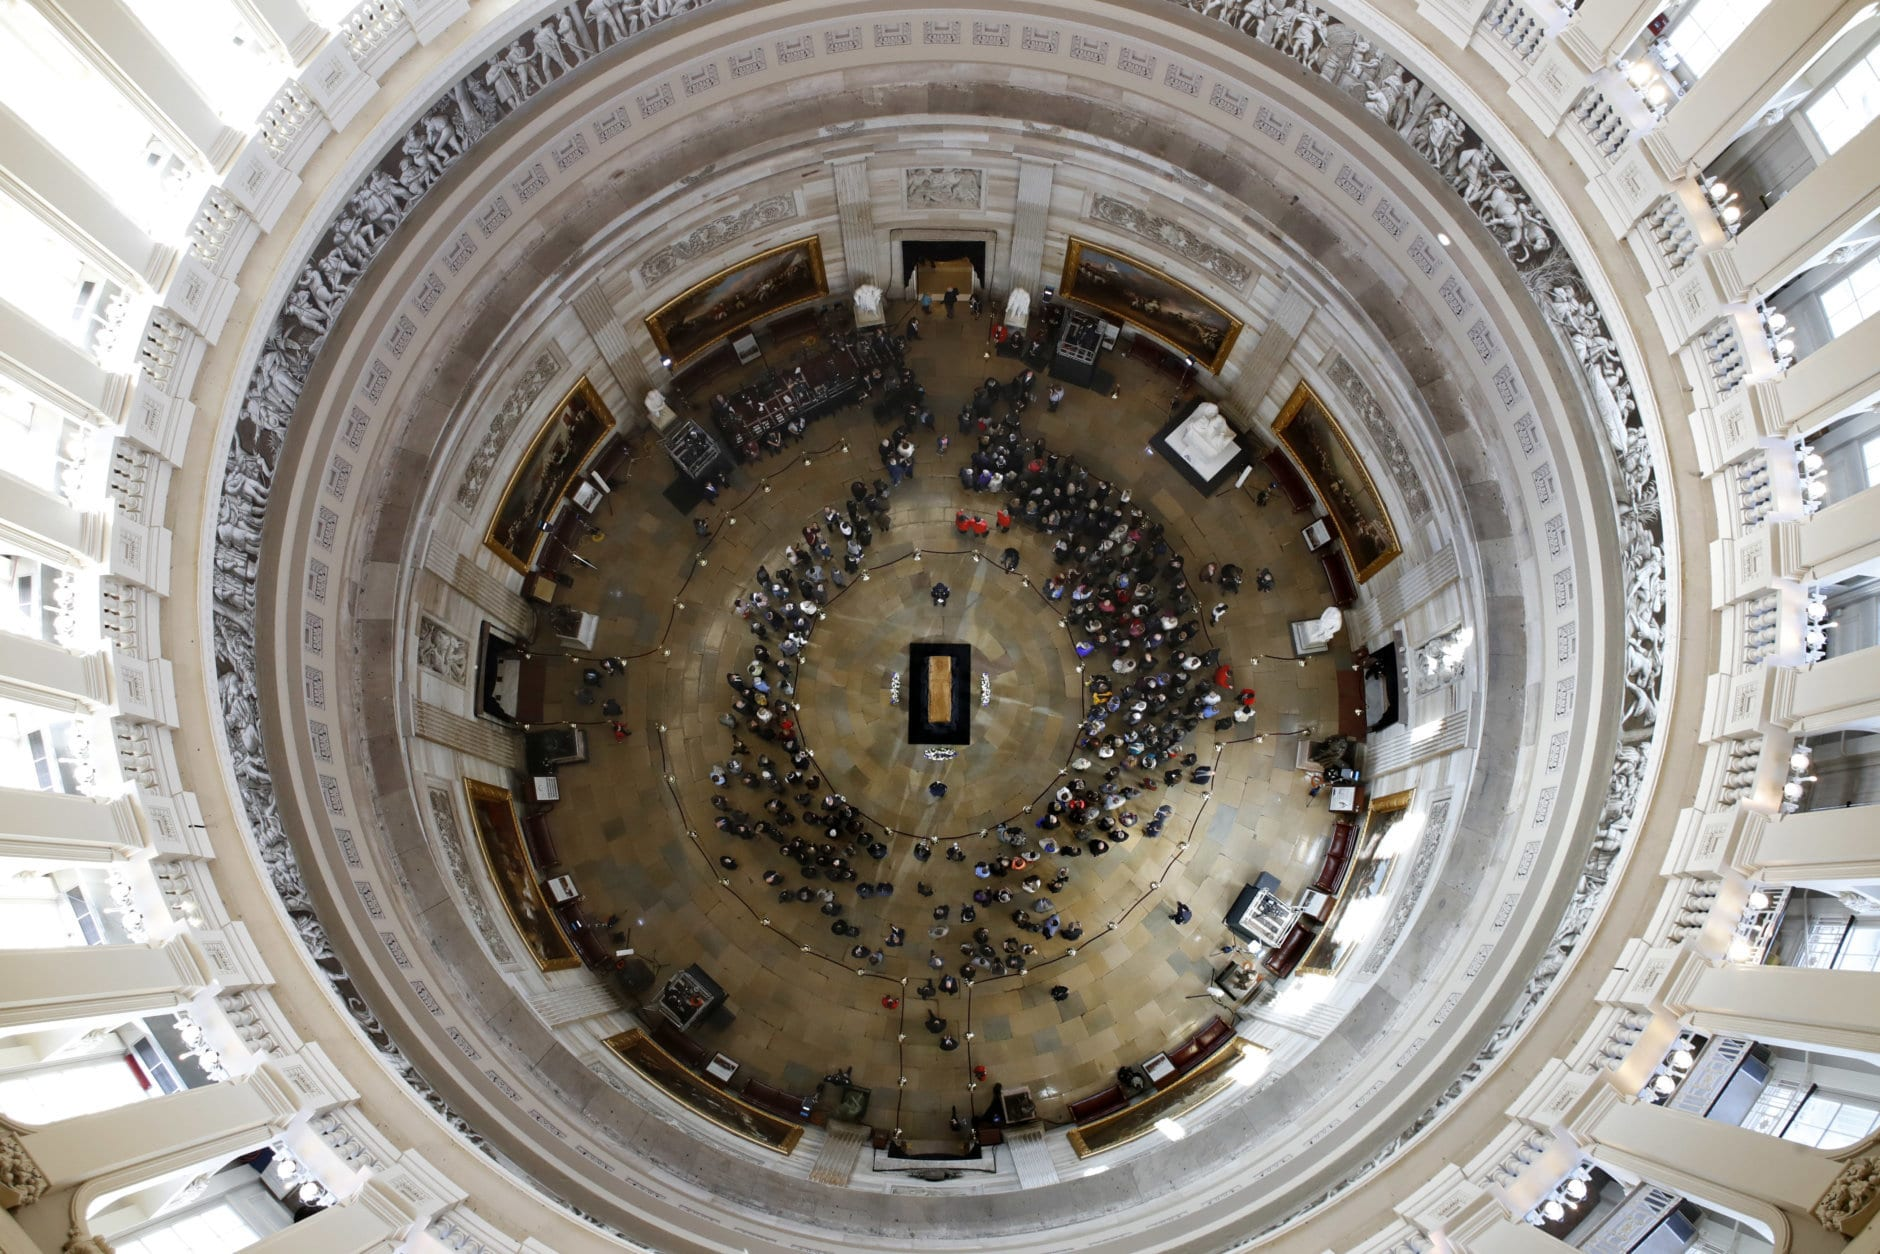 Visitors pay their respects as the casket of Reverend Billy Graham lies in honor at the Rotunda of the U.S. Capitol Building in Washington on Feb. 28, 2018. (AP Photo/Jacquelyn Martin)